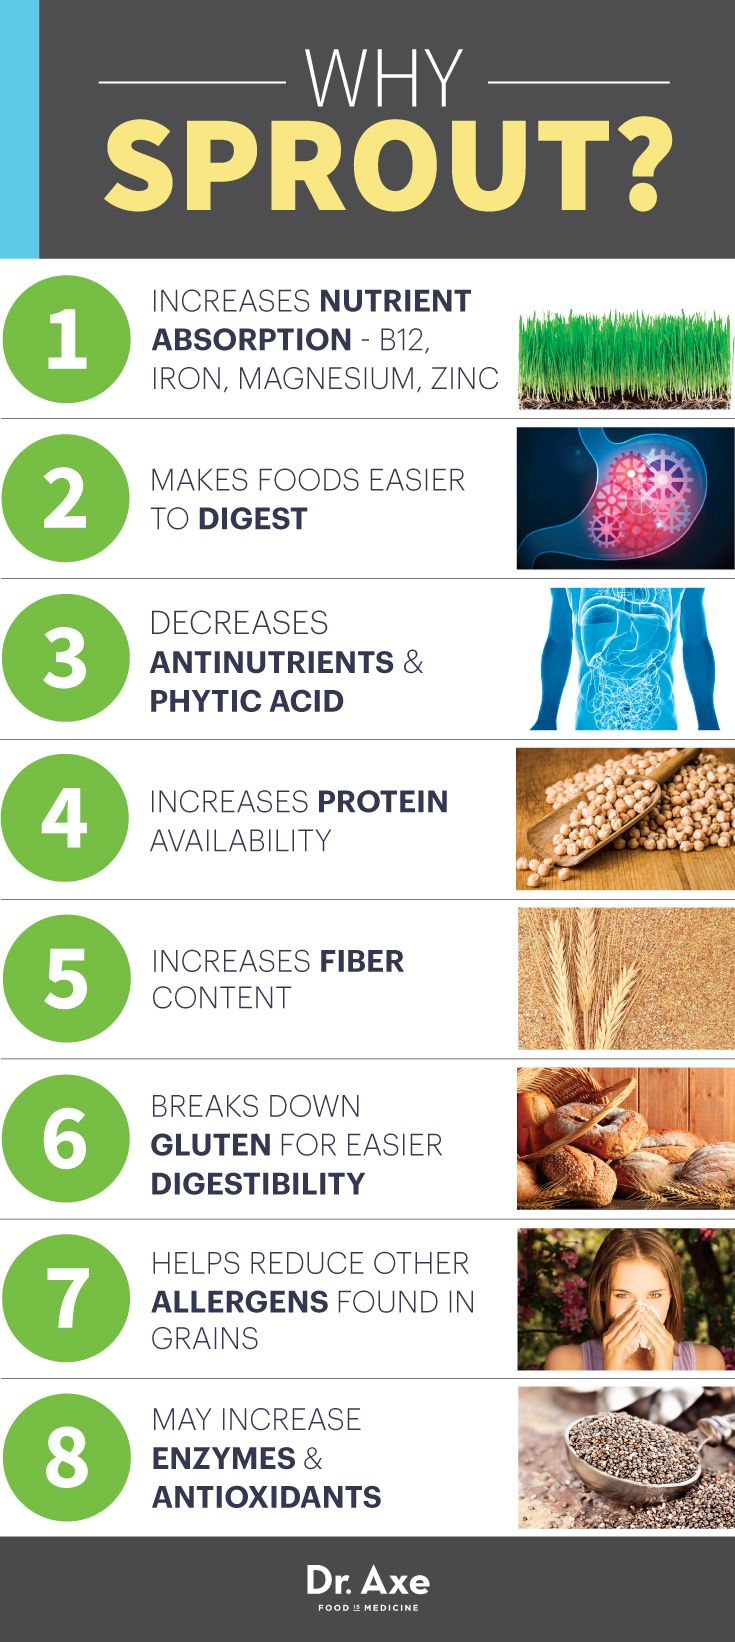 Sprout Benefits Graphic  http://www.draxe.com #health #Holistic #natural